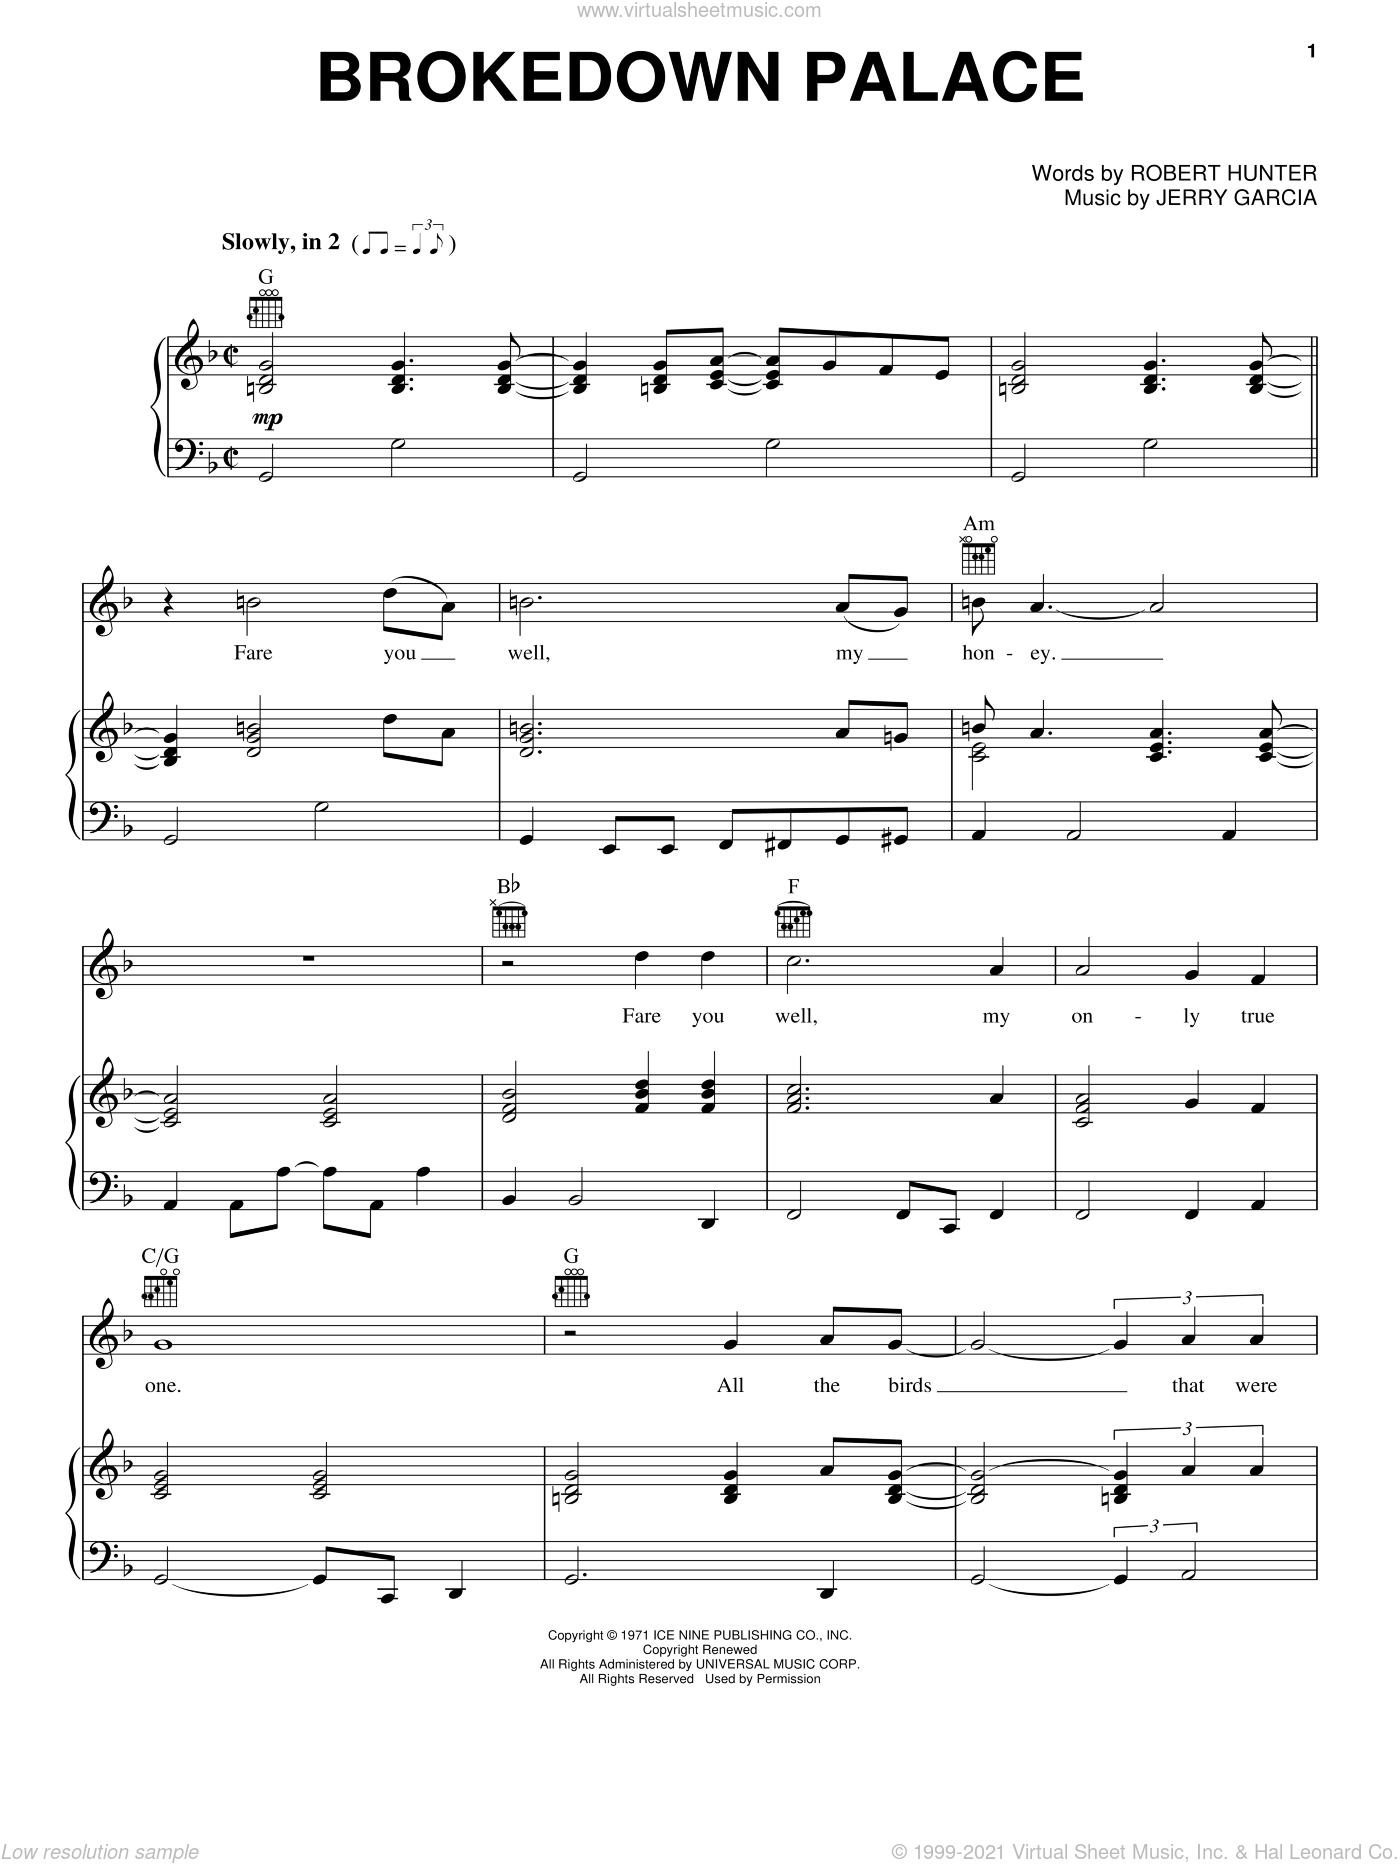 Brokedown Palace sheet music for voice, piano or guitar by Grateful Dead, Jerry Garcia and Robert Hunter, intermediate skill level